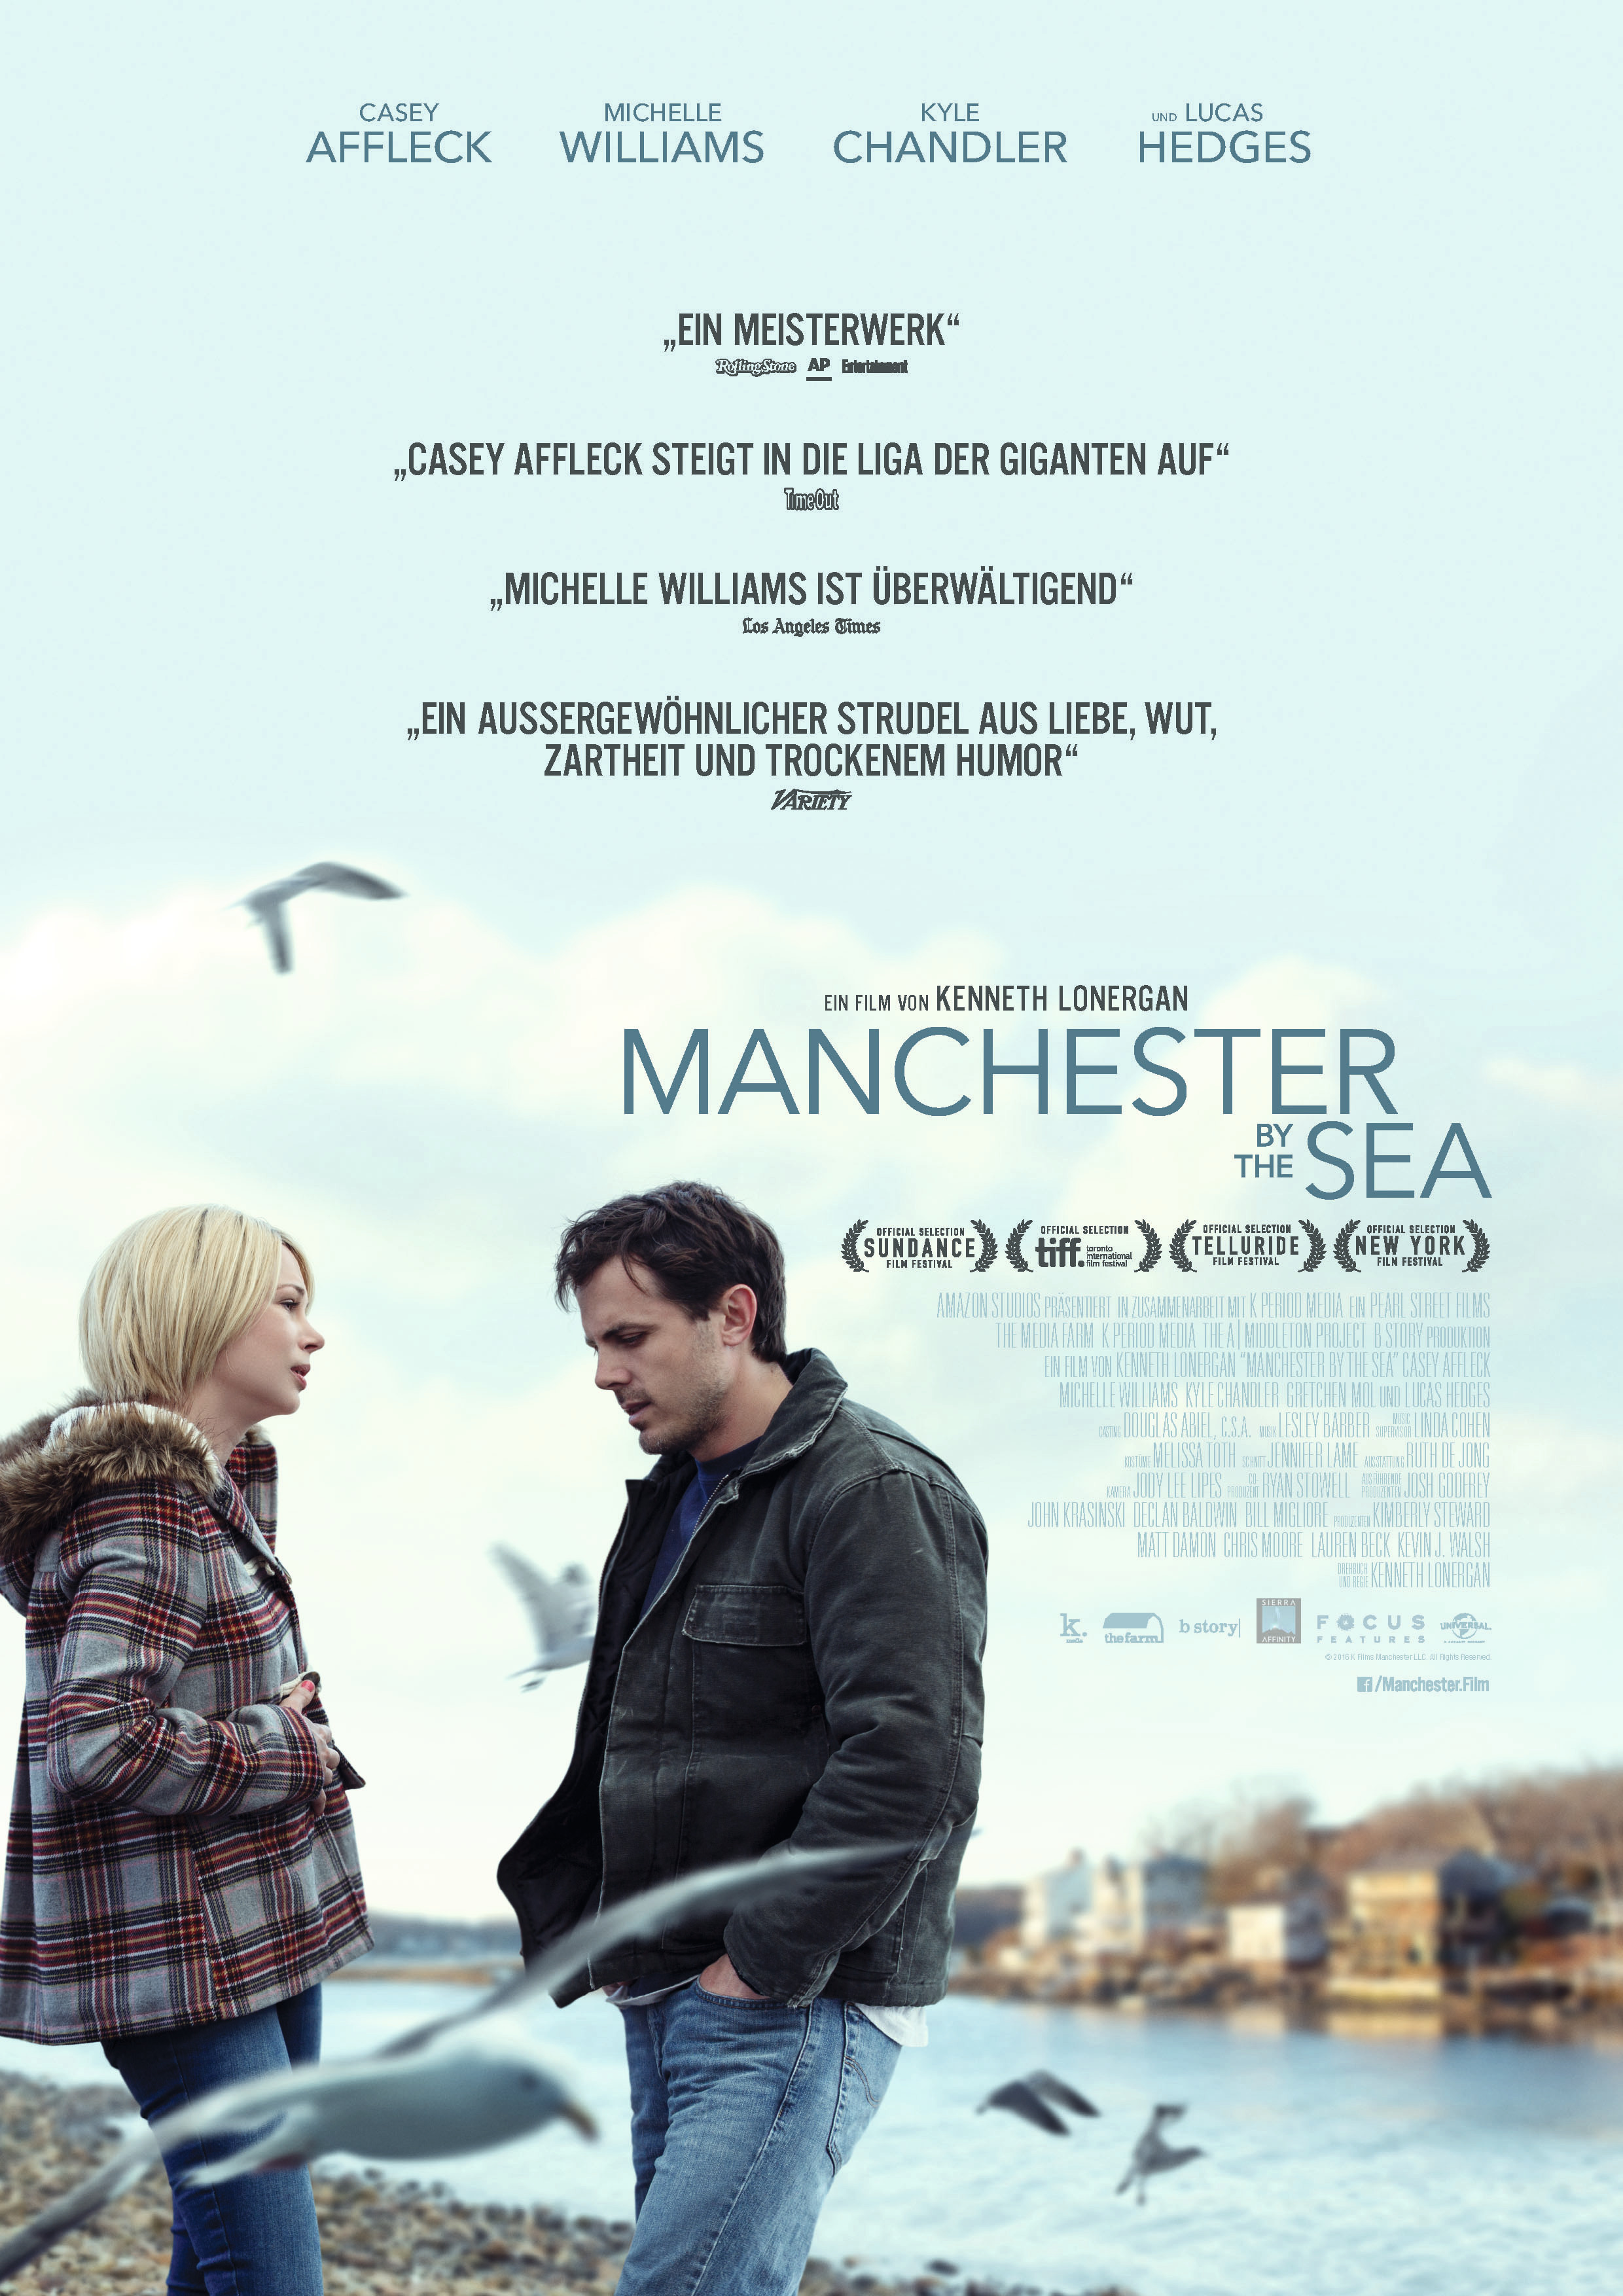 MANCHESTER_BY_THE_SEA_Hauptplakat_4C (1).jpg